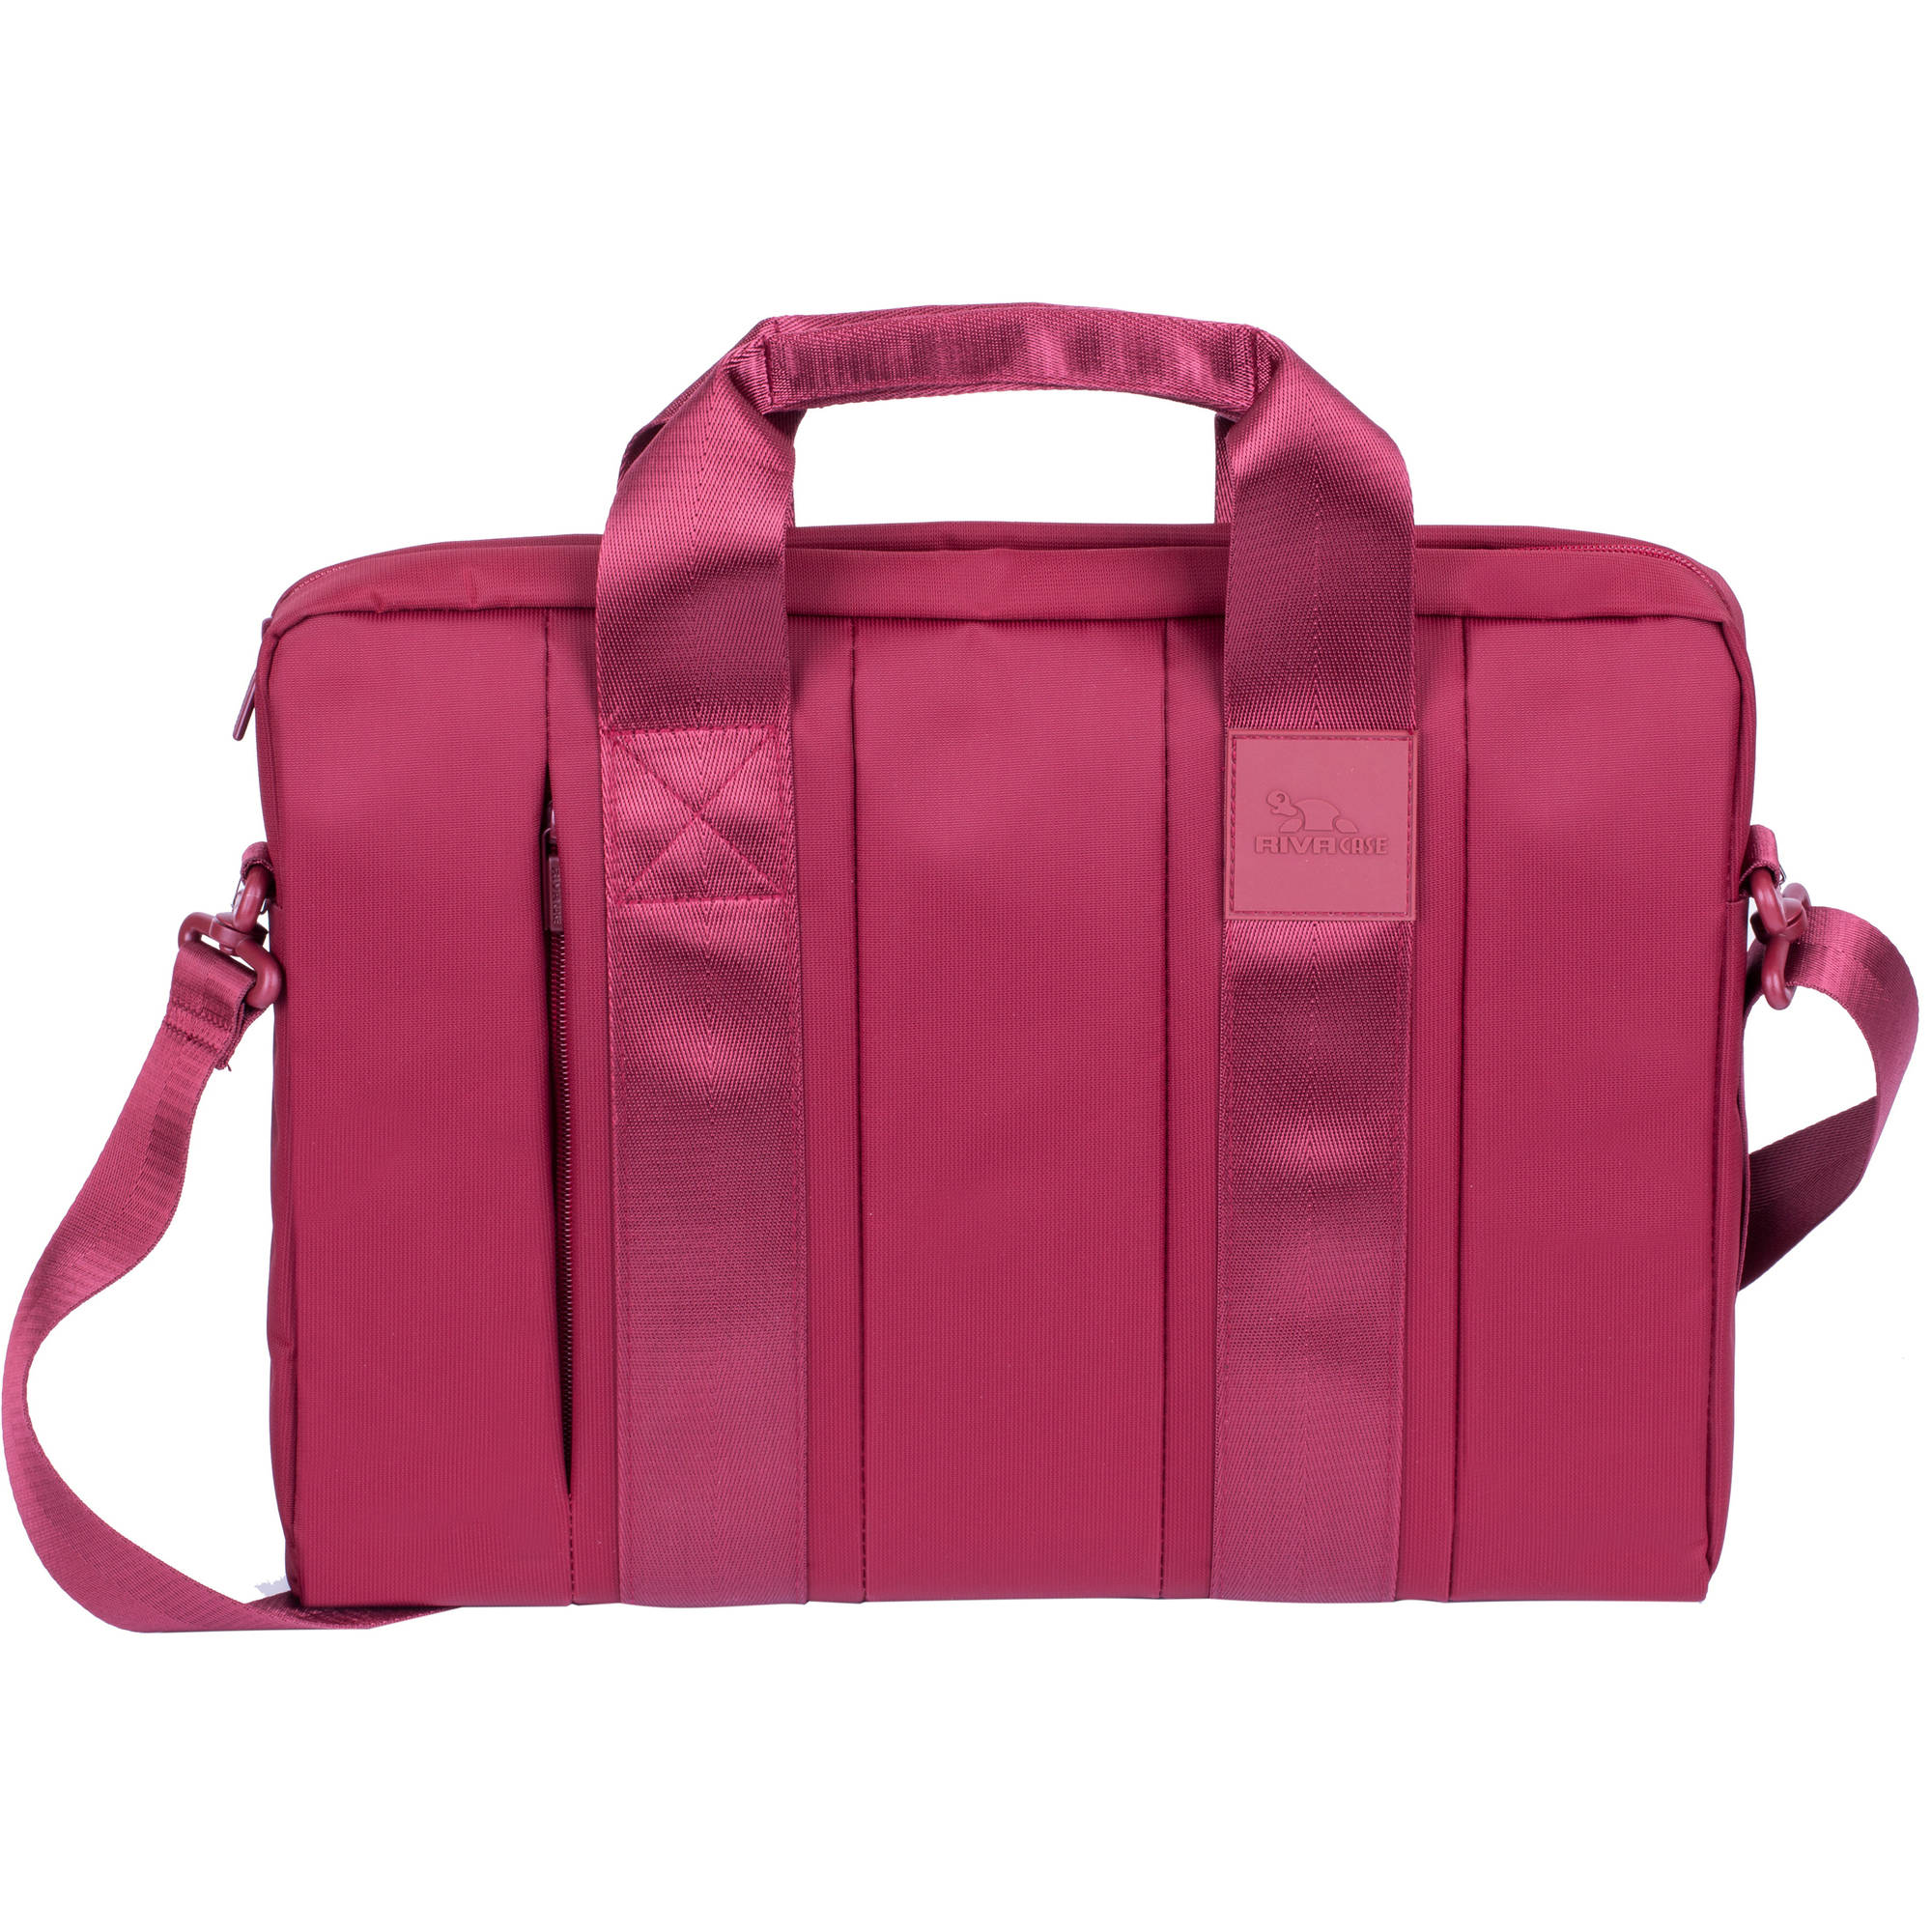 "RIVACASE 15.6"" Laptop Bag 8830, Red"